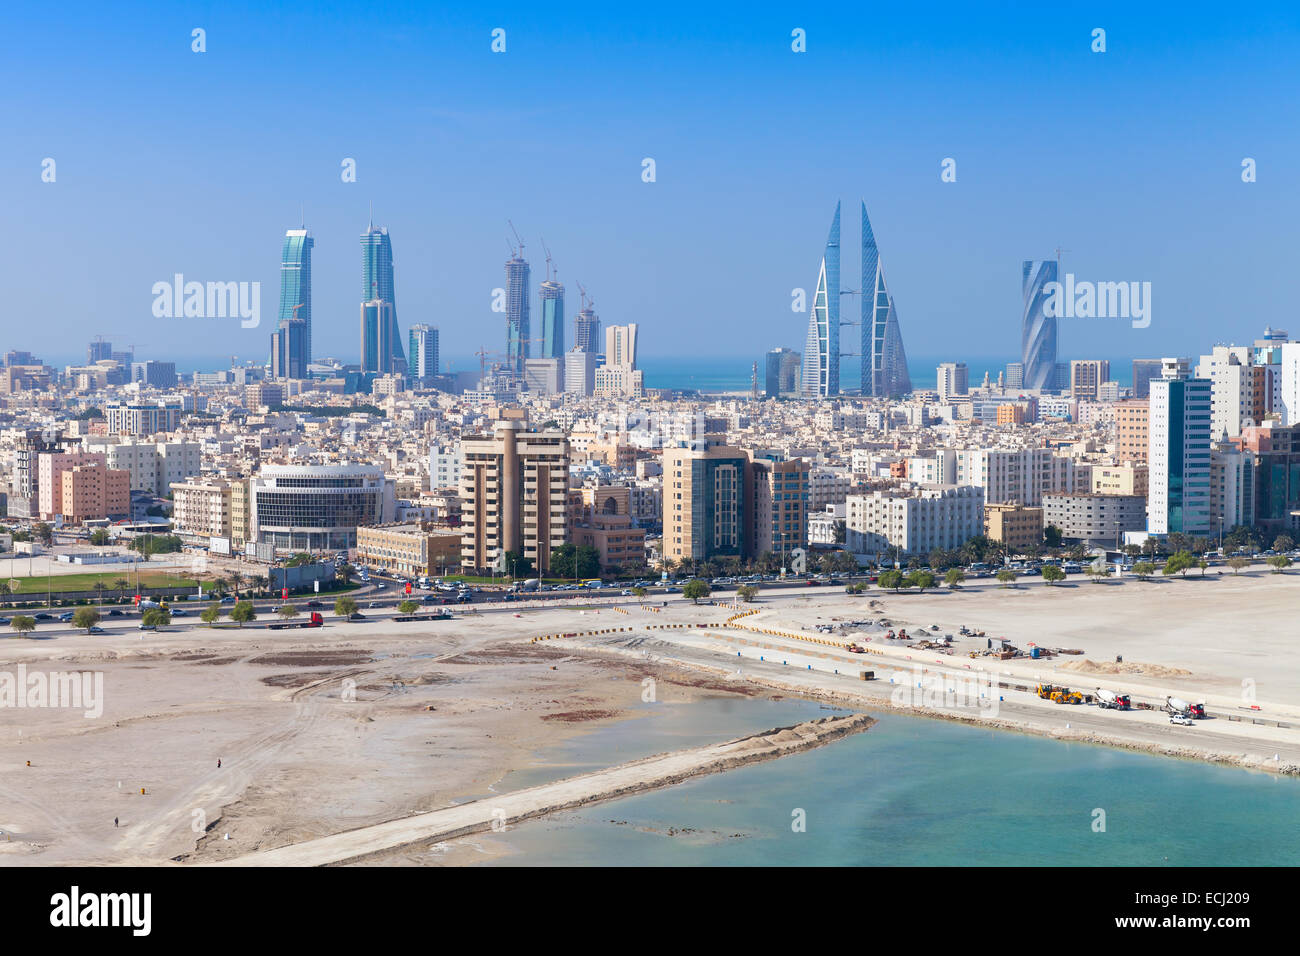 Bird view of Manama city, Bahrain. Skyline with modern skyscrapers standing on the coast of Persian Gulf - Stock Image